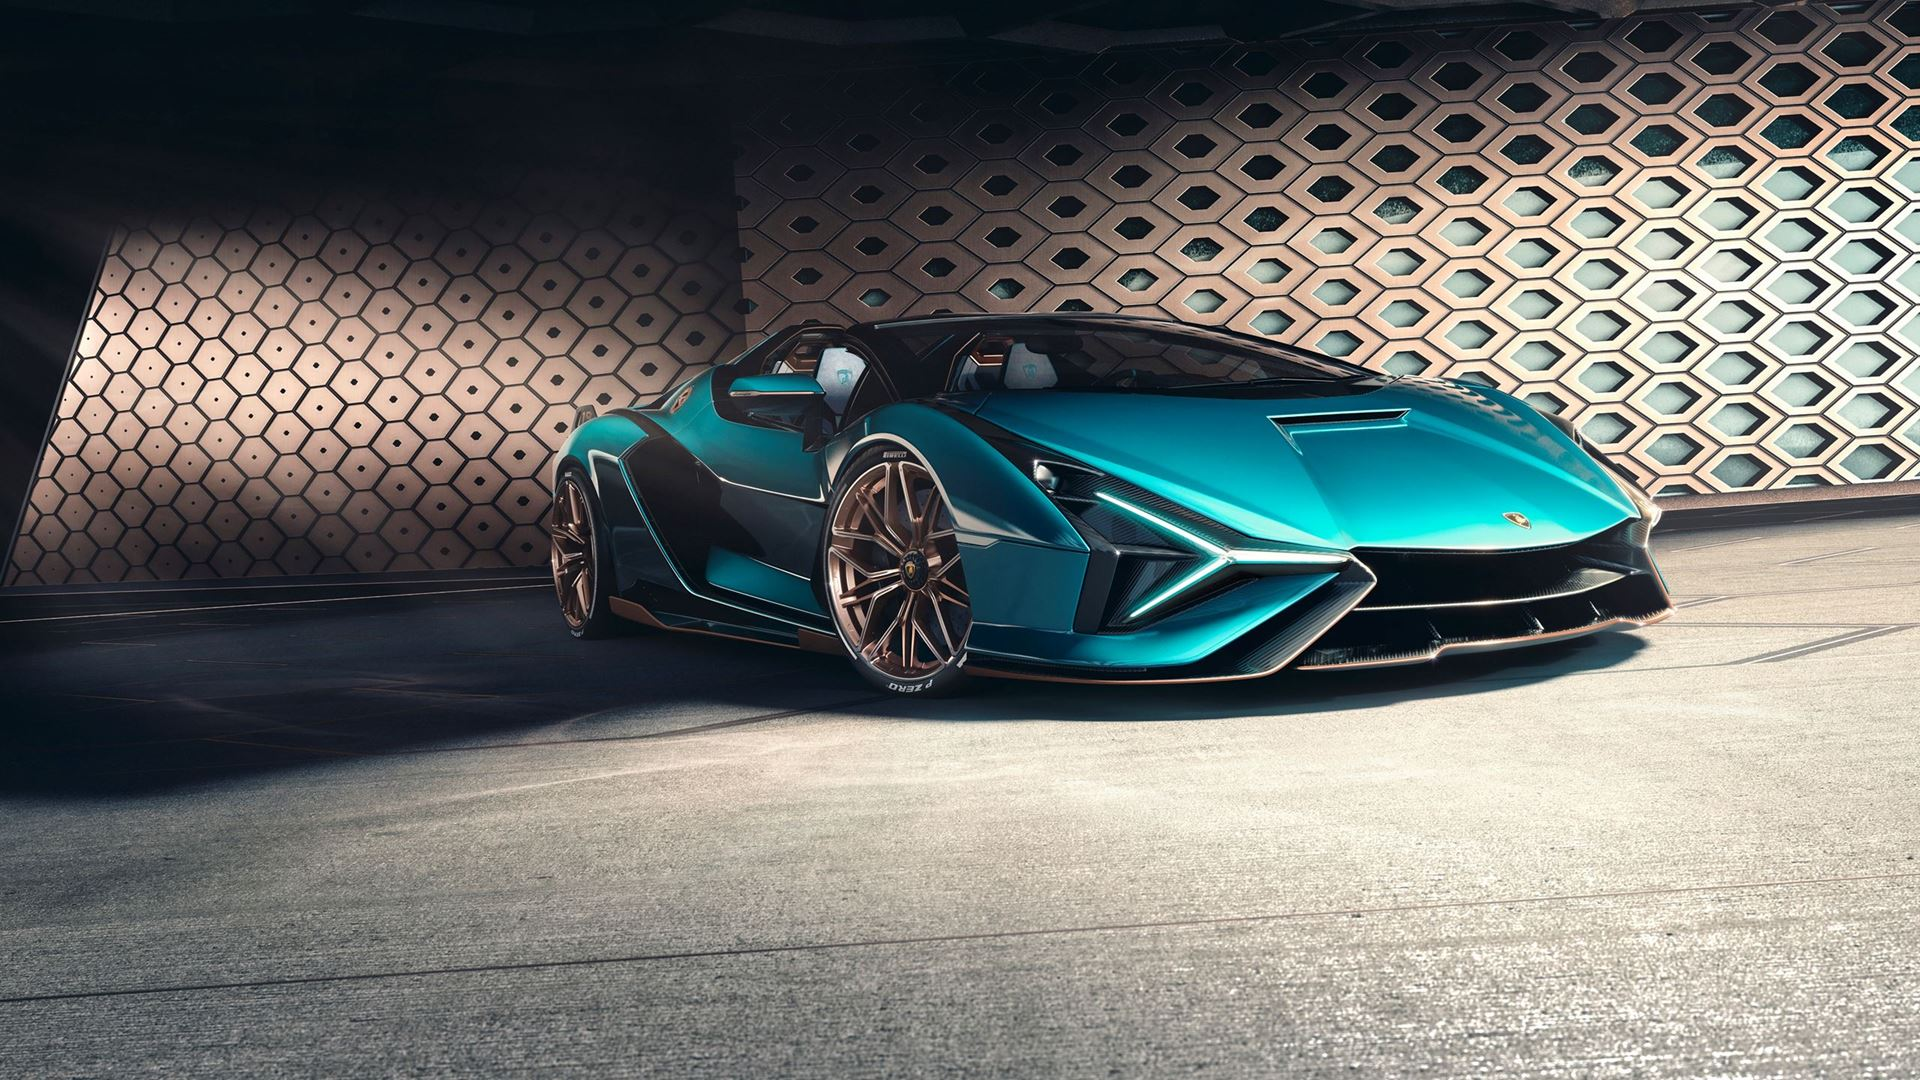 Automobili Lamborghini closes 2020 with 7,430 cars delivered and six new product launches - Image 7